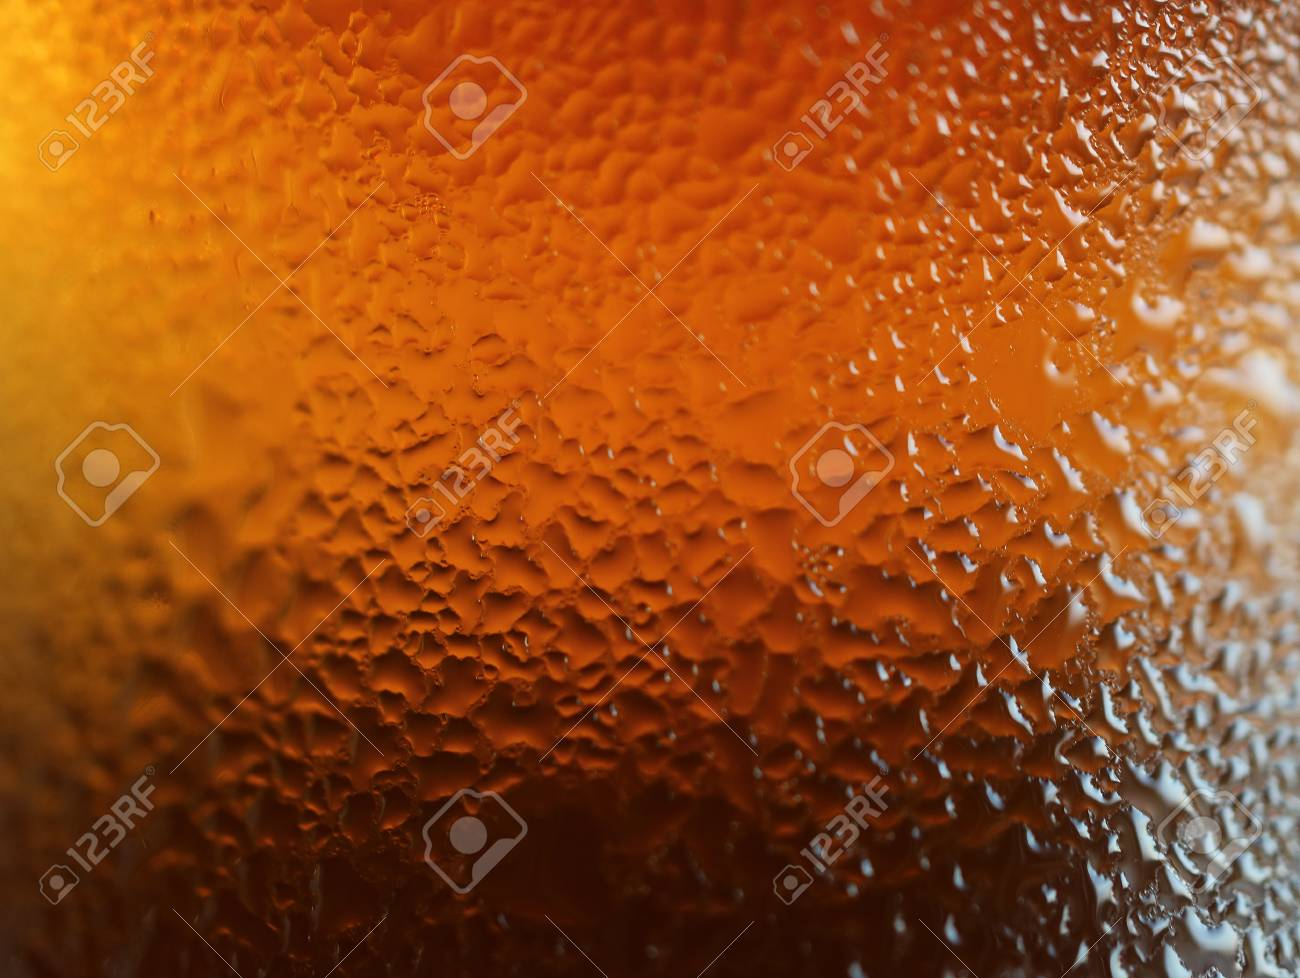 Macro Shot Of Water Drops Texture On The Deep Orange Color Bottle, For  Abstract Background